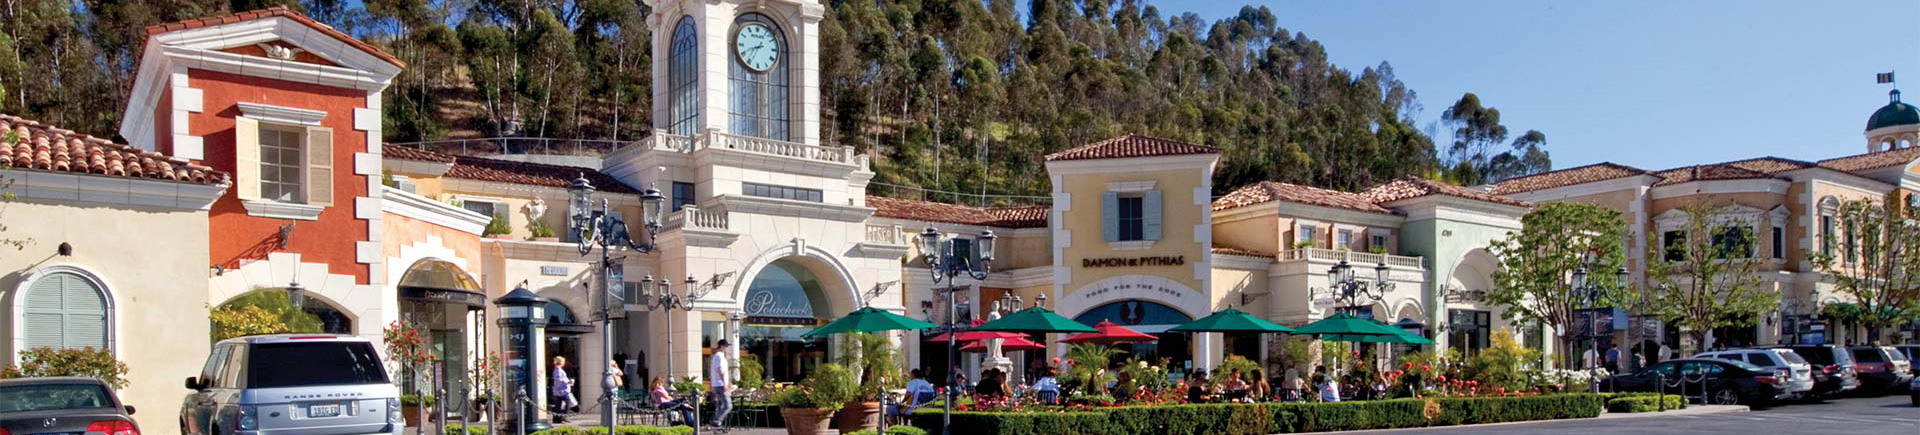 Malibu Canyon Apartments in Calabasas, CA - The Commons at Calabasas